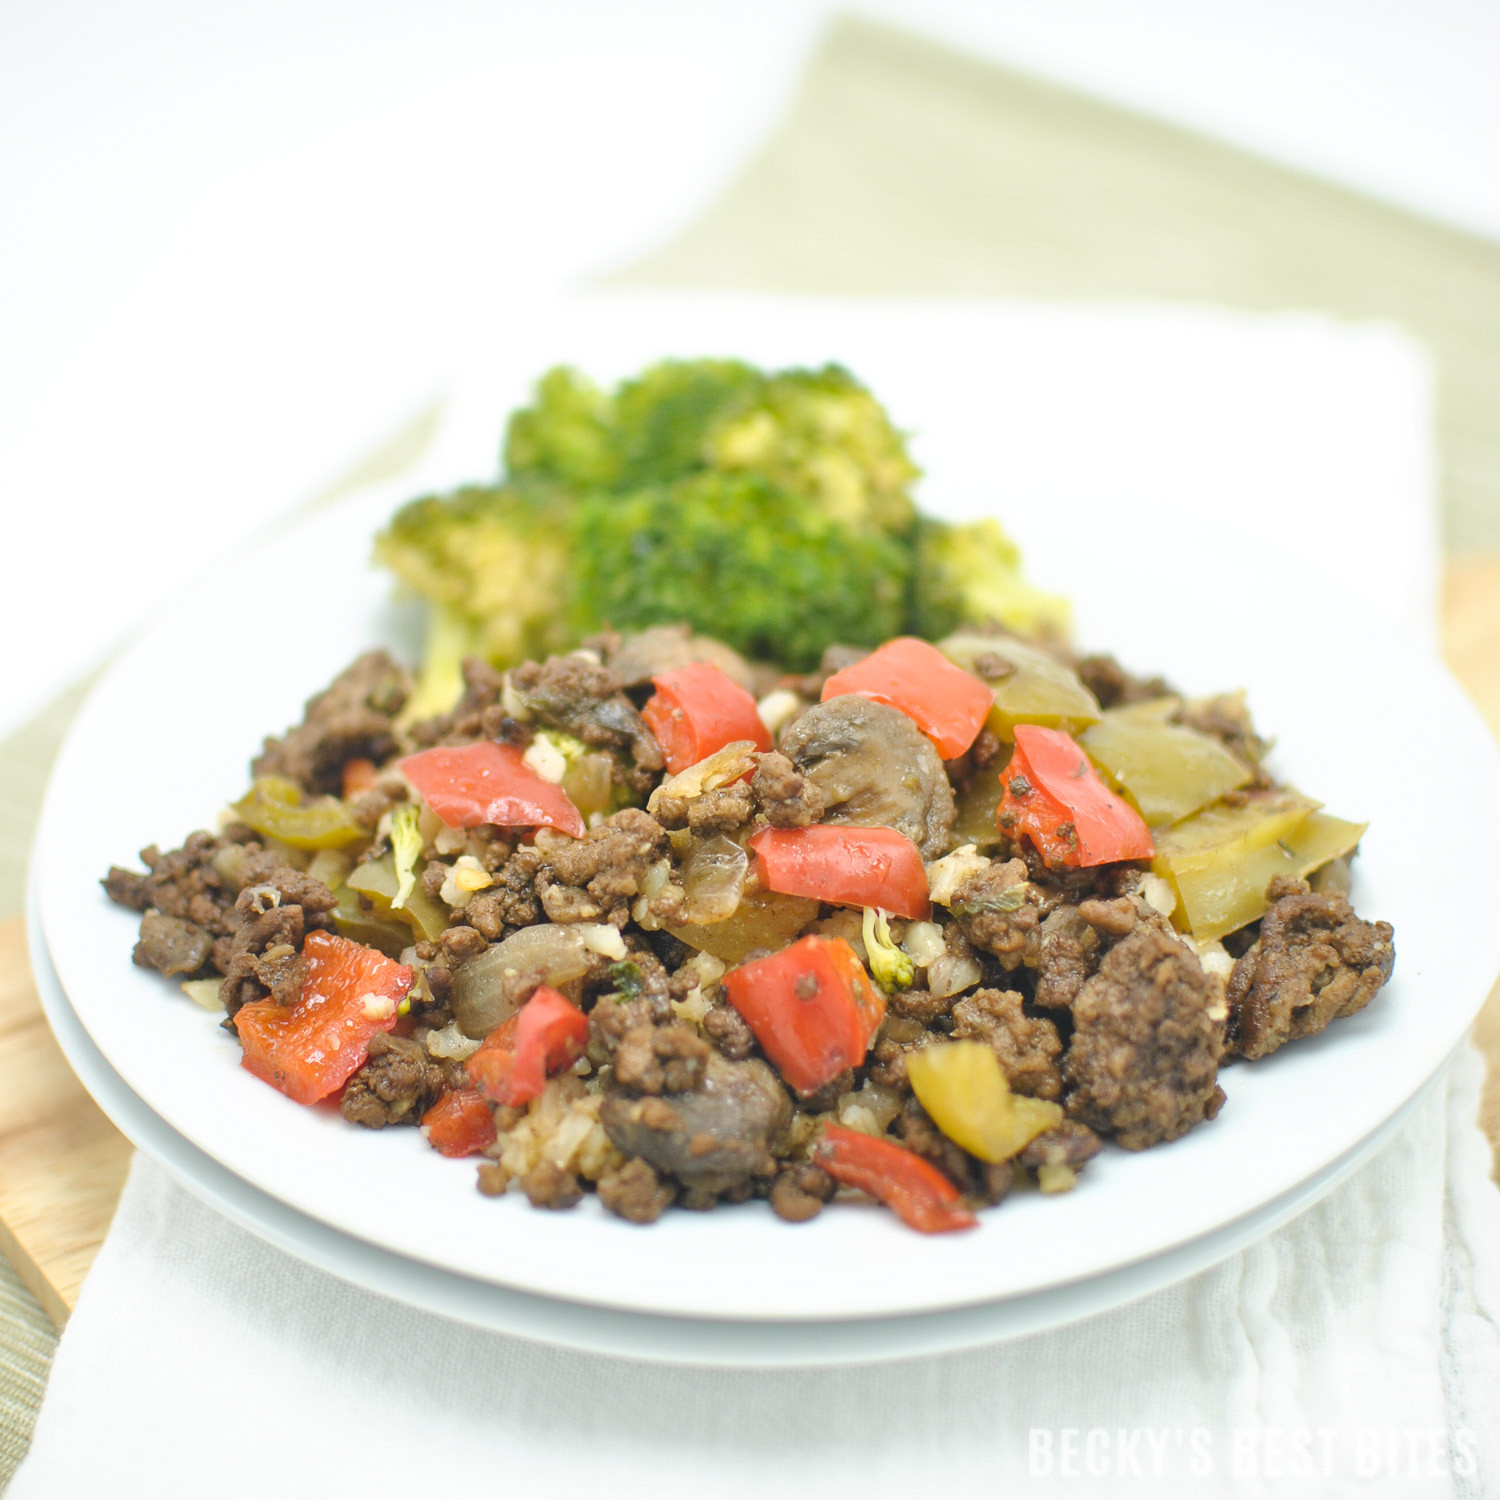 Healthy Ground Beef And Mushroom Recipes  Bell Pepper Mushroom and Ground Beef Skillet Recipe Becky